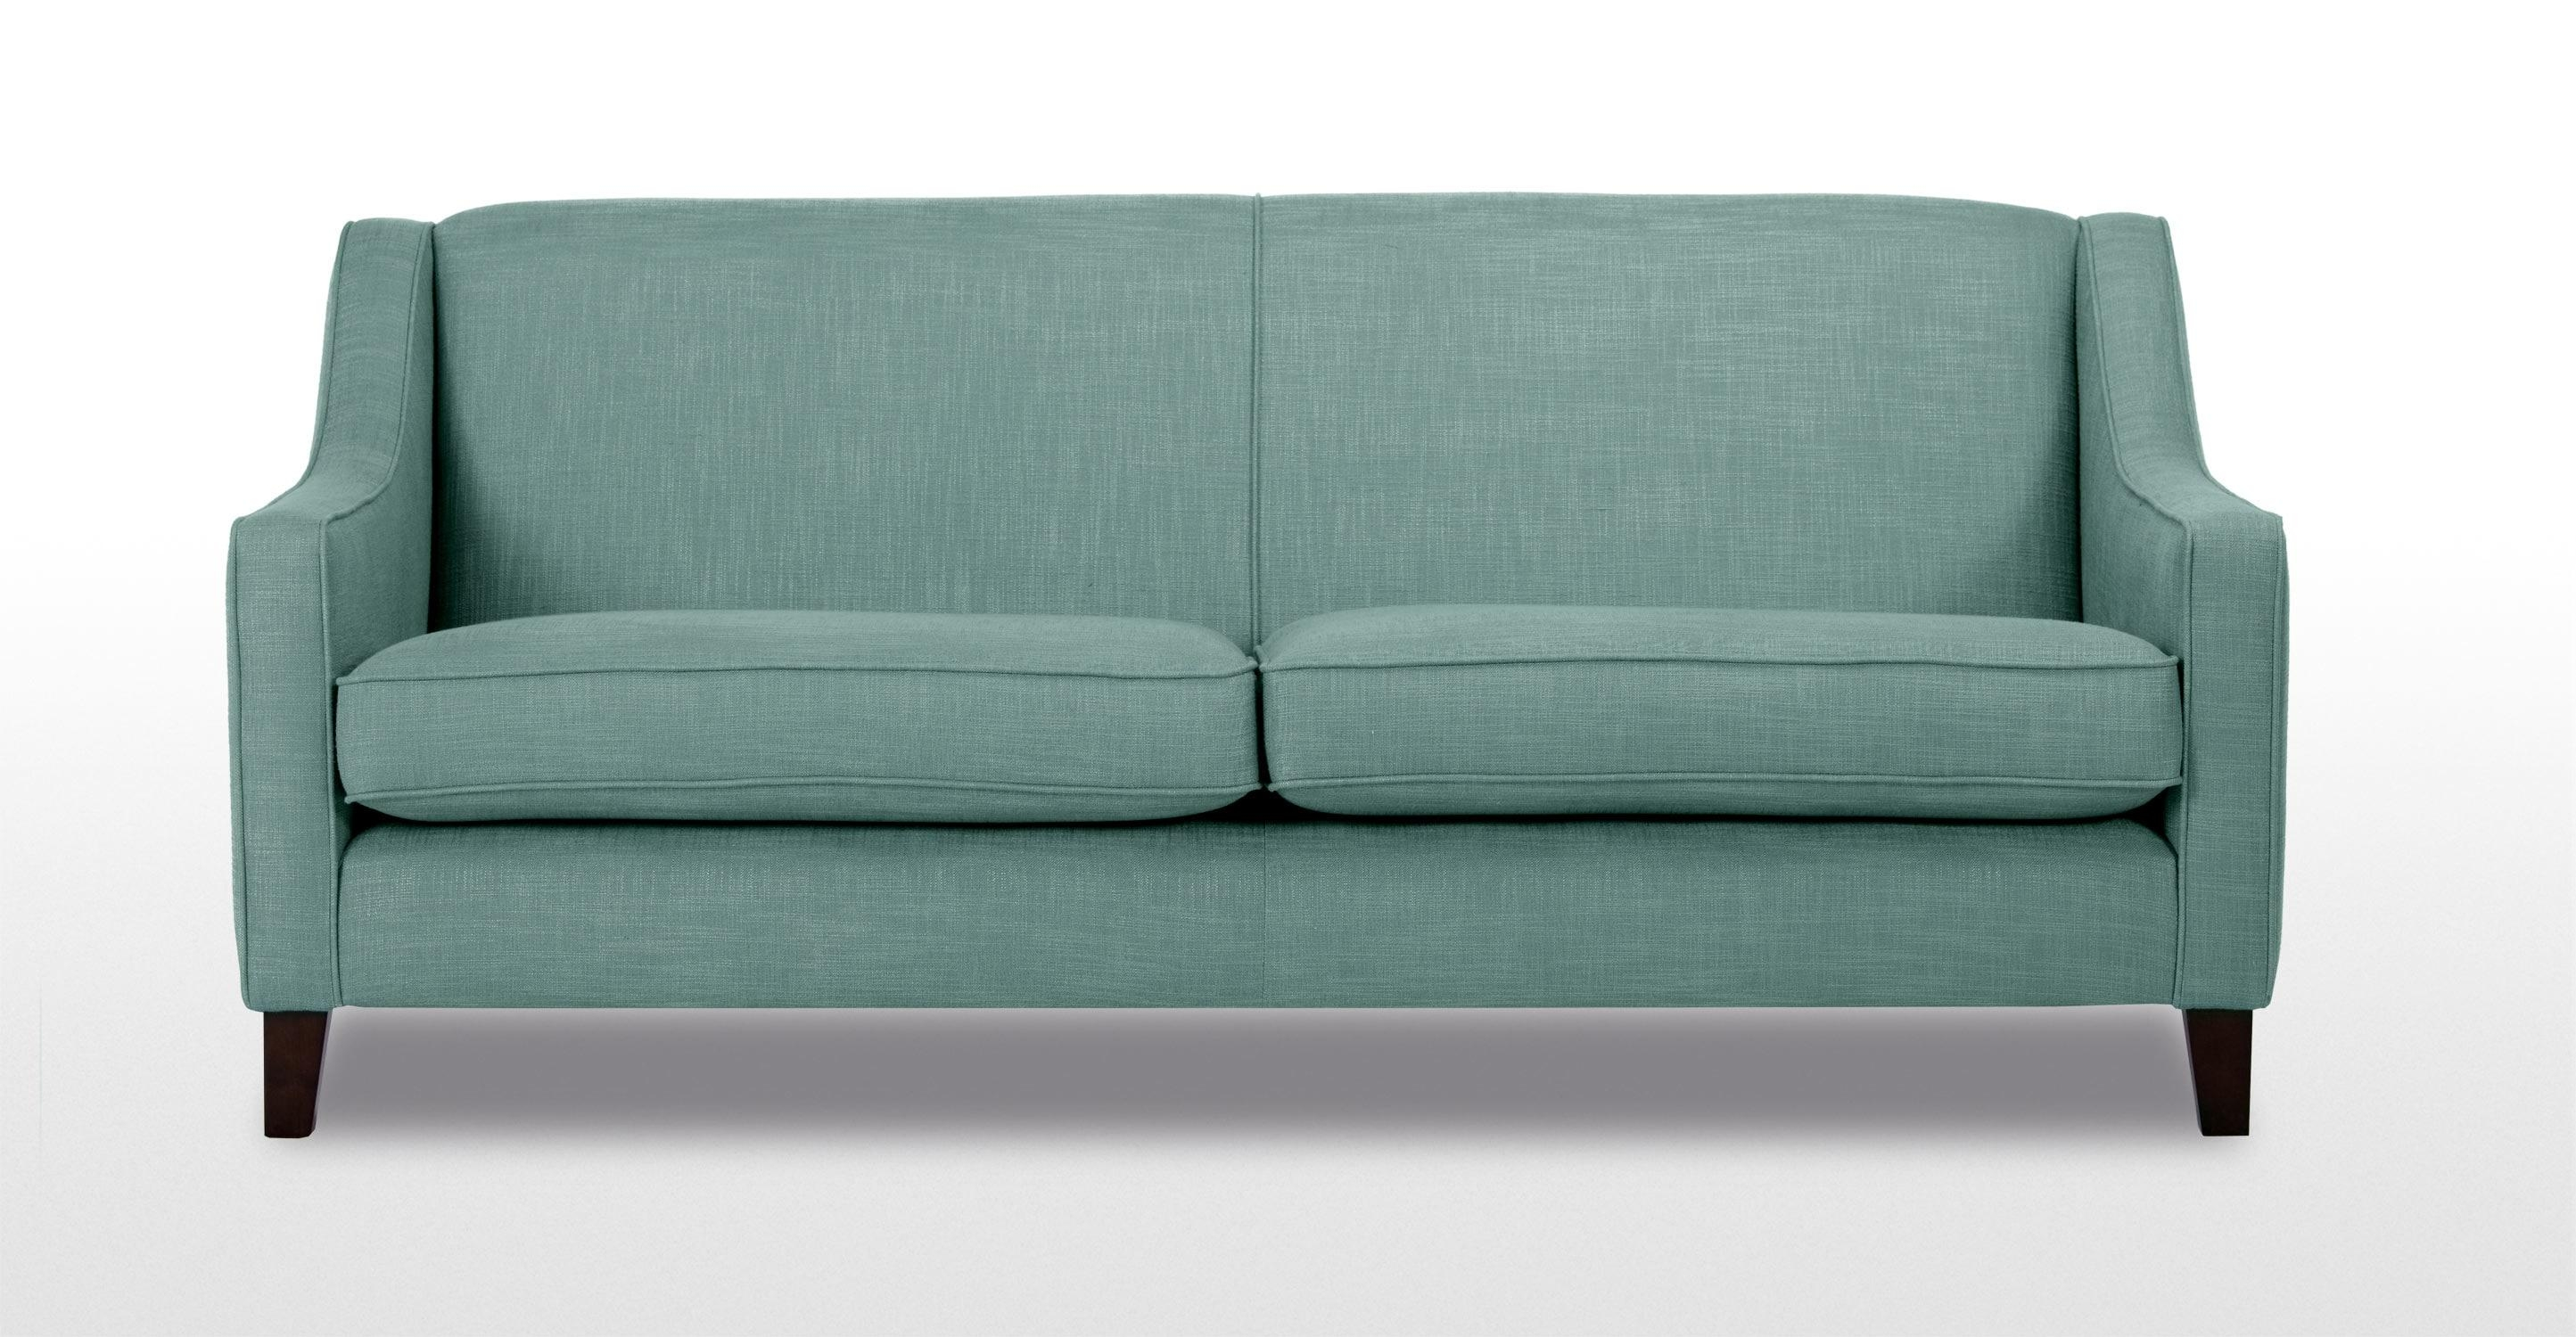 Halston 3 Seater Sofa In Aqua | Made Throughout Three Seater Sofas (Image 12 of 20)